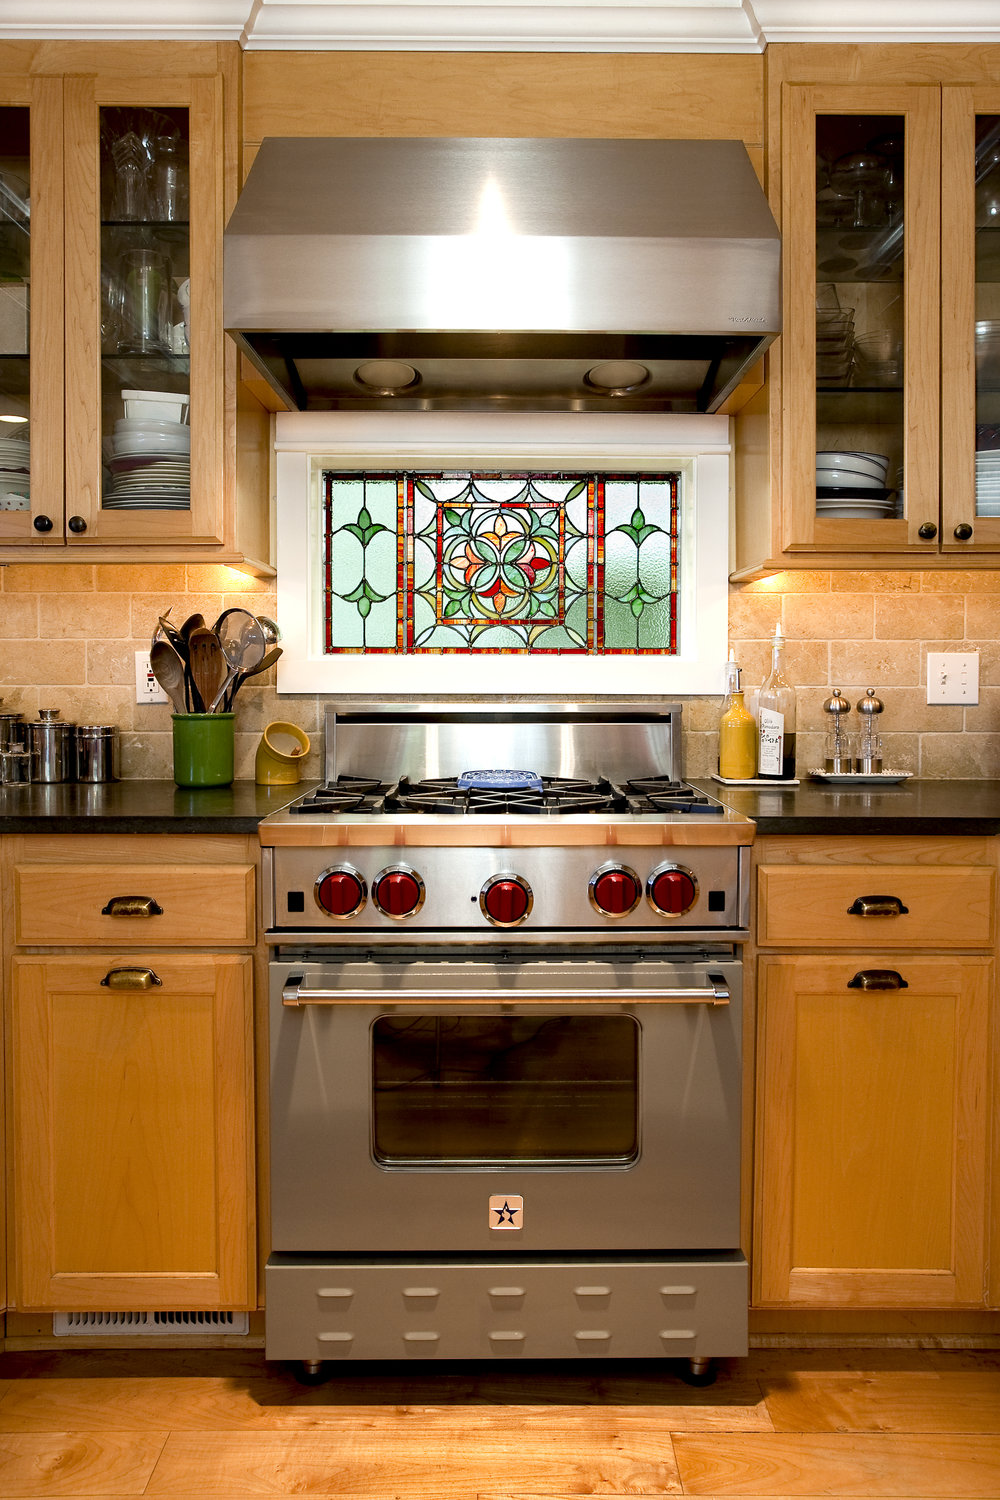 Queen Anne kitchen architecture